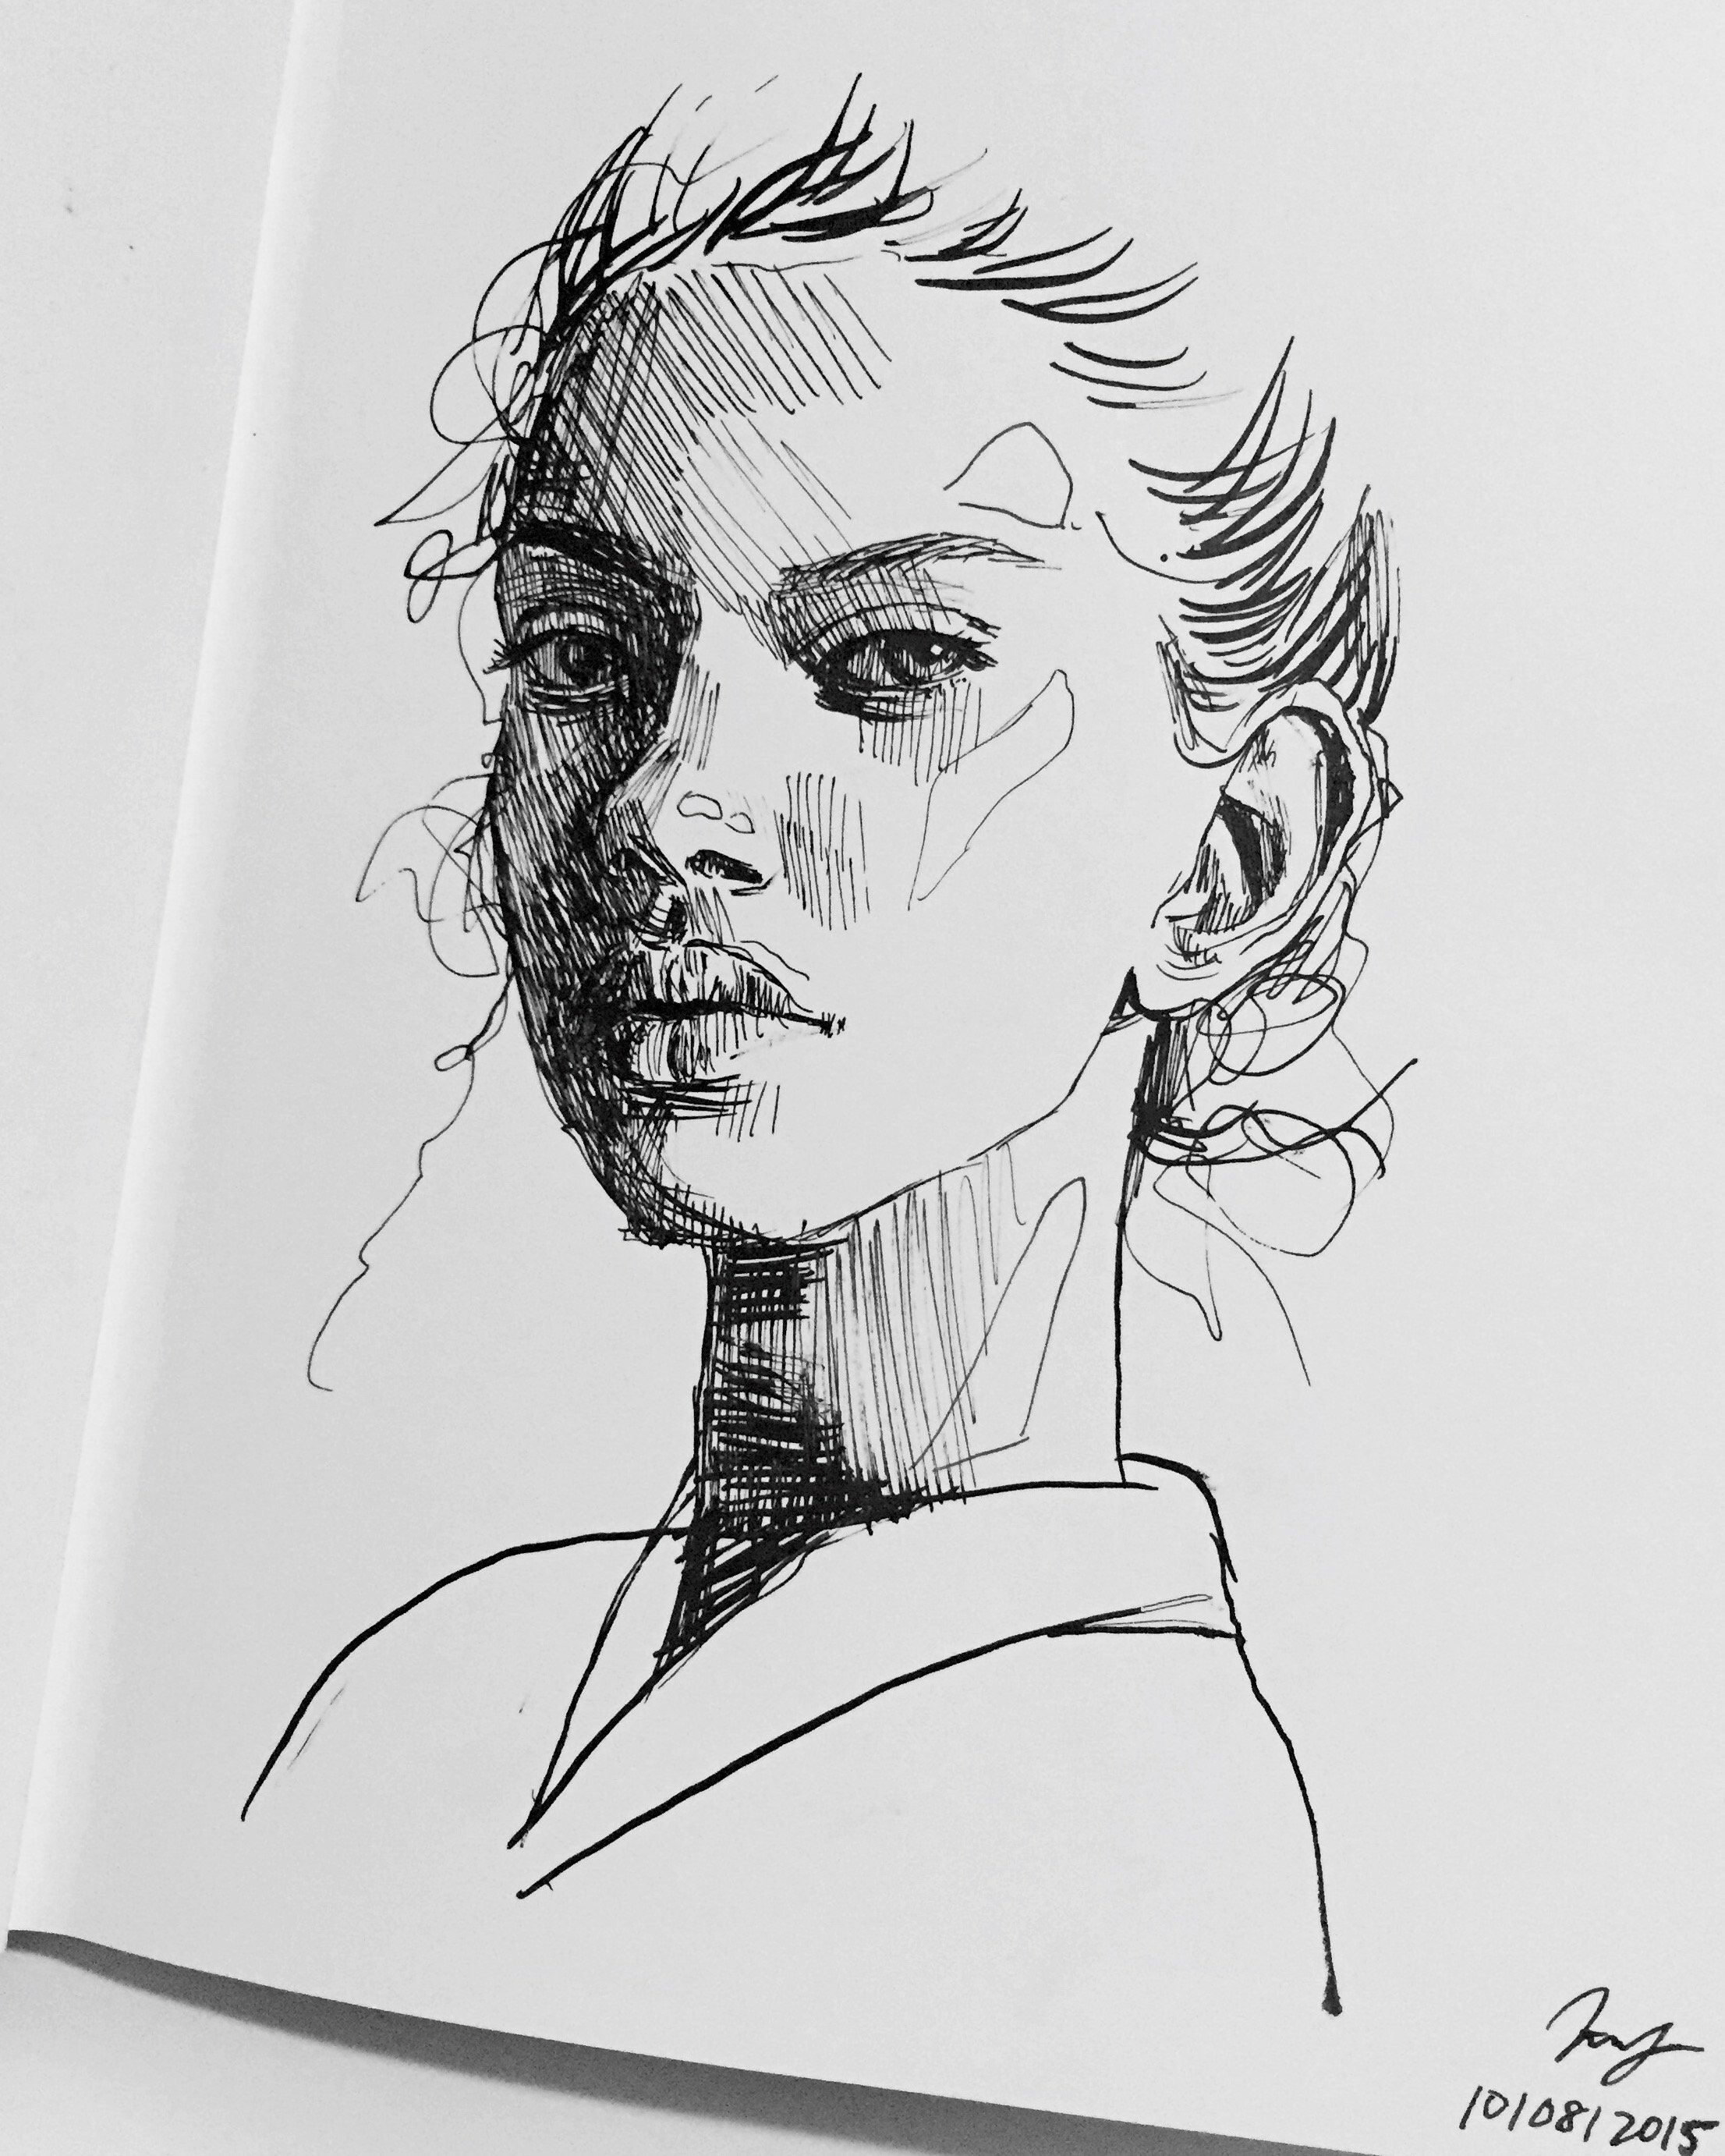 Pencil sketches are the best but i also love to draw with super thin black liners because they are always clean and the movement